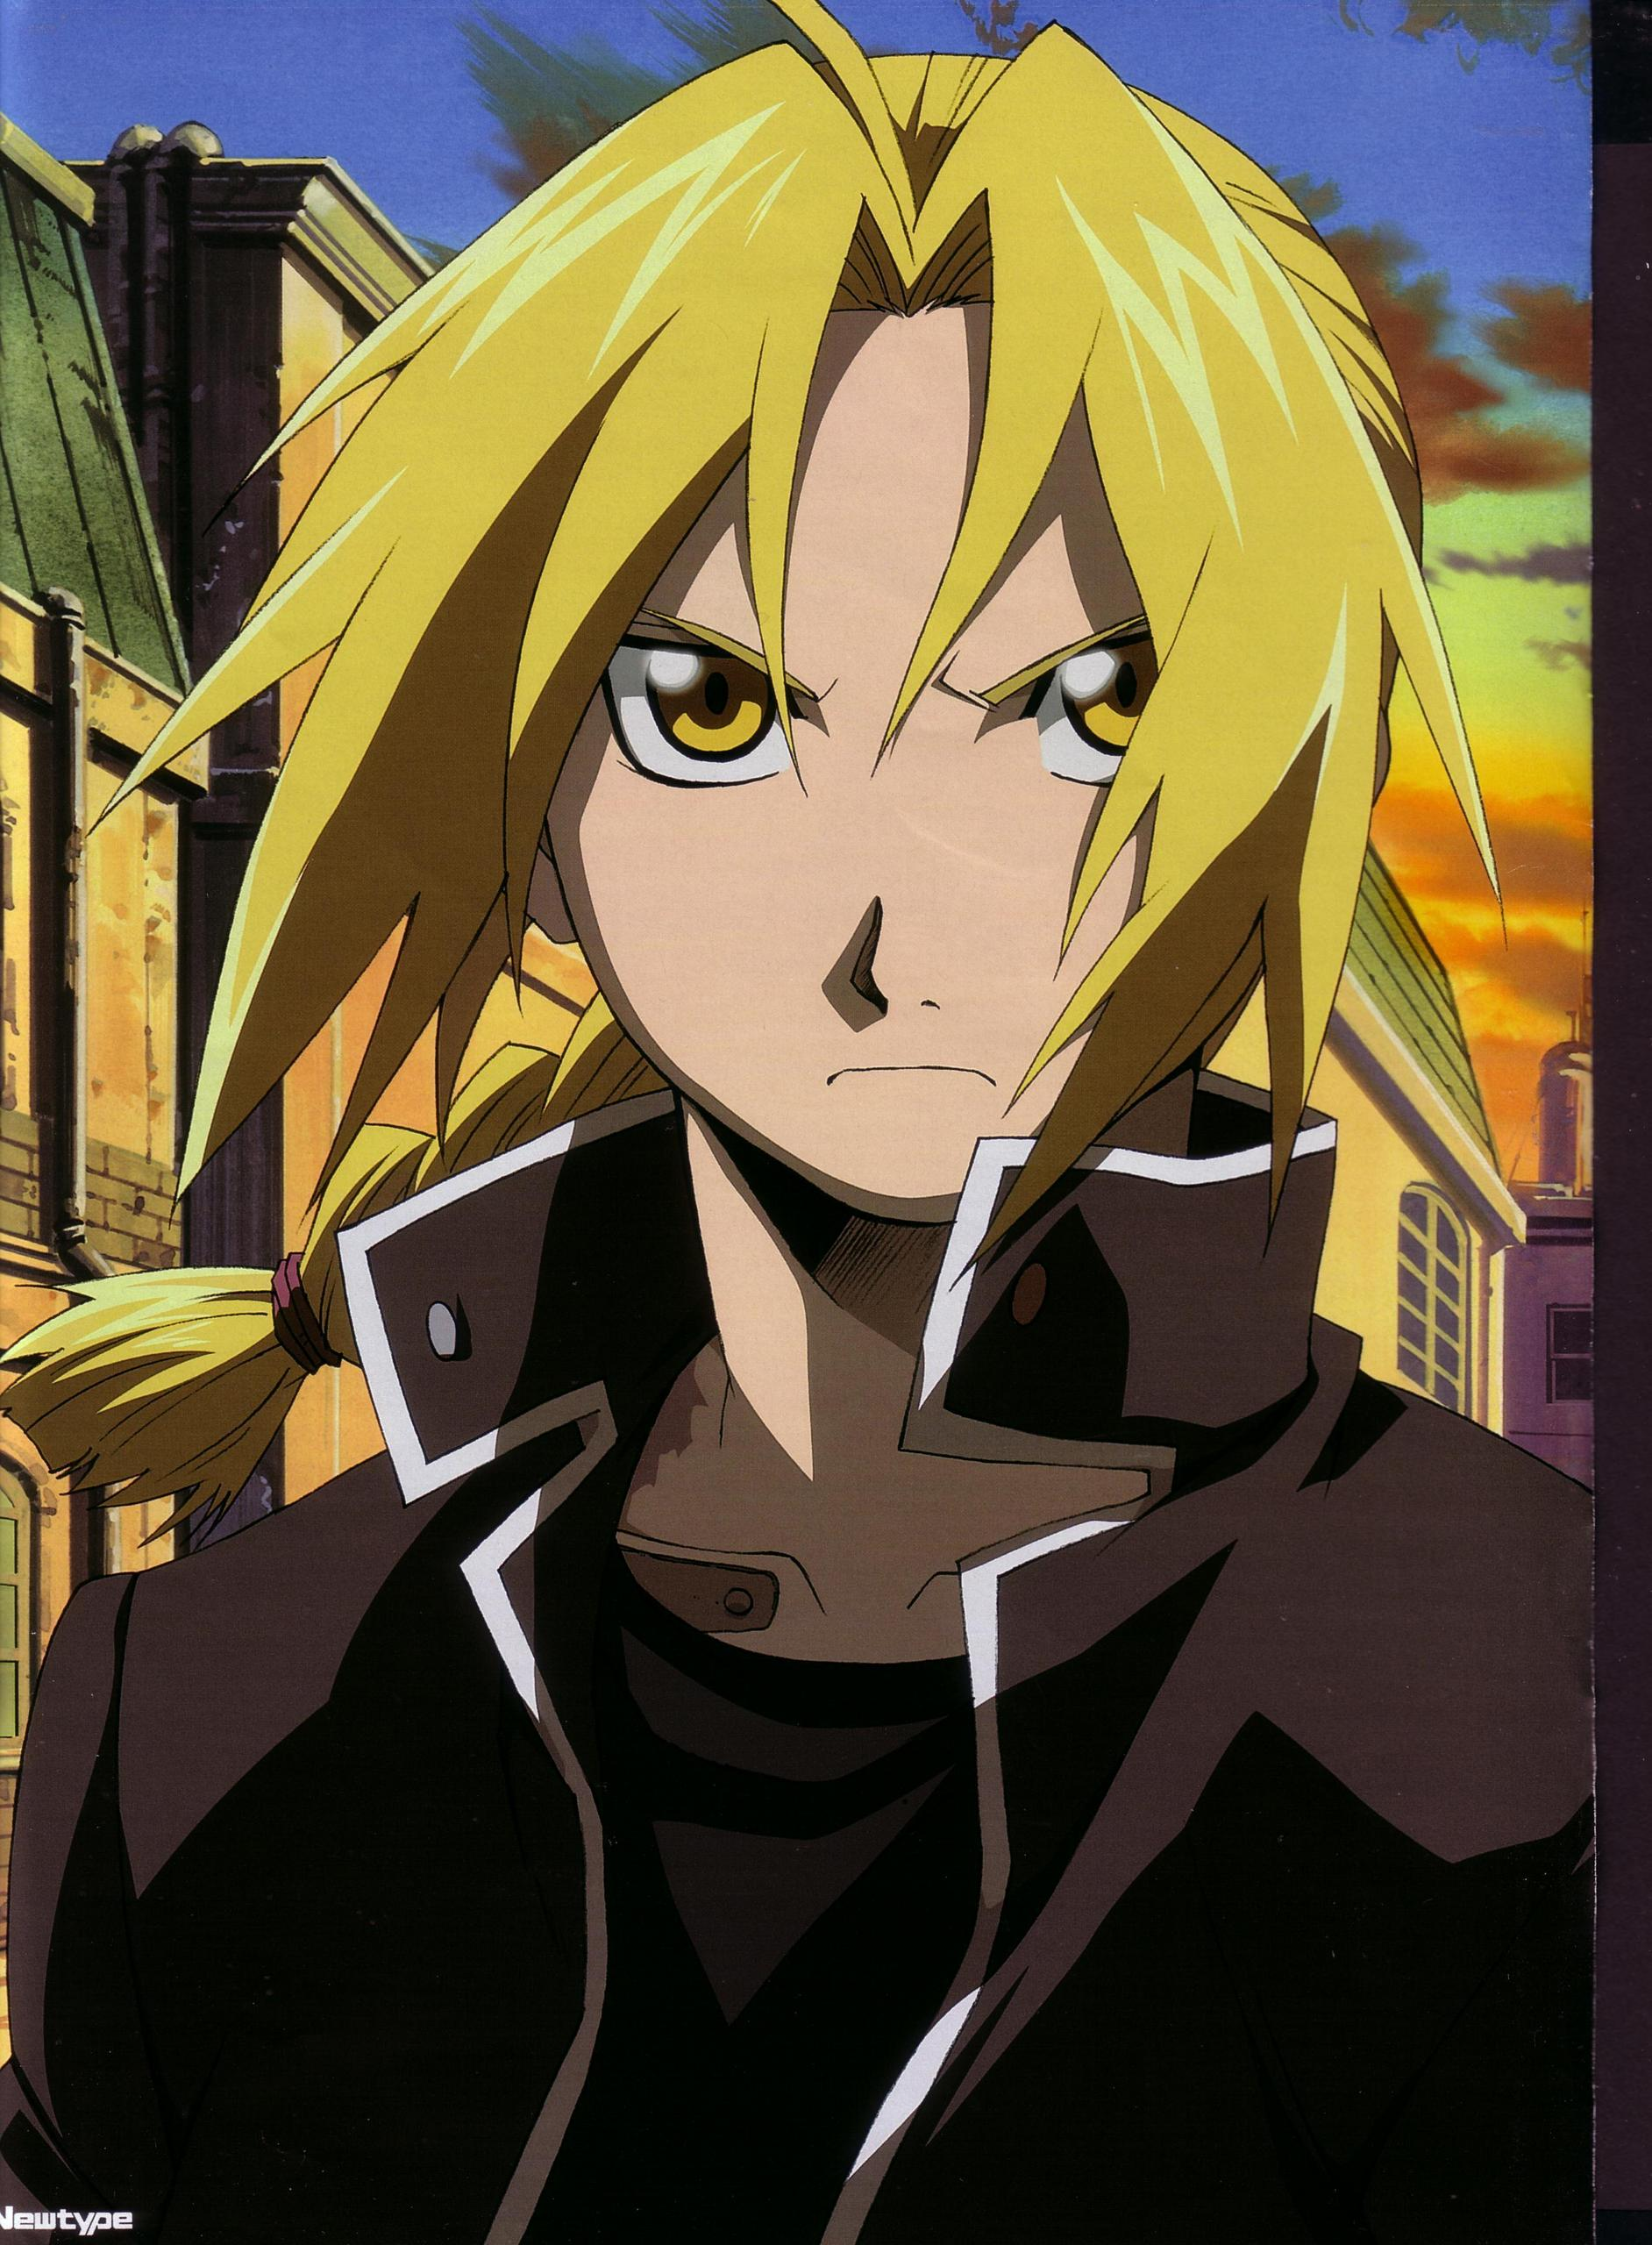 Wallpapers Digital Cute: Fullmetal Alchemist: Elric Edward ...